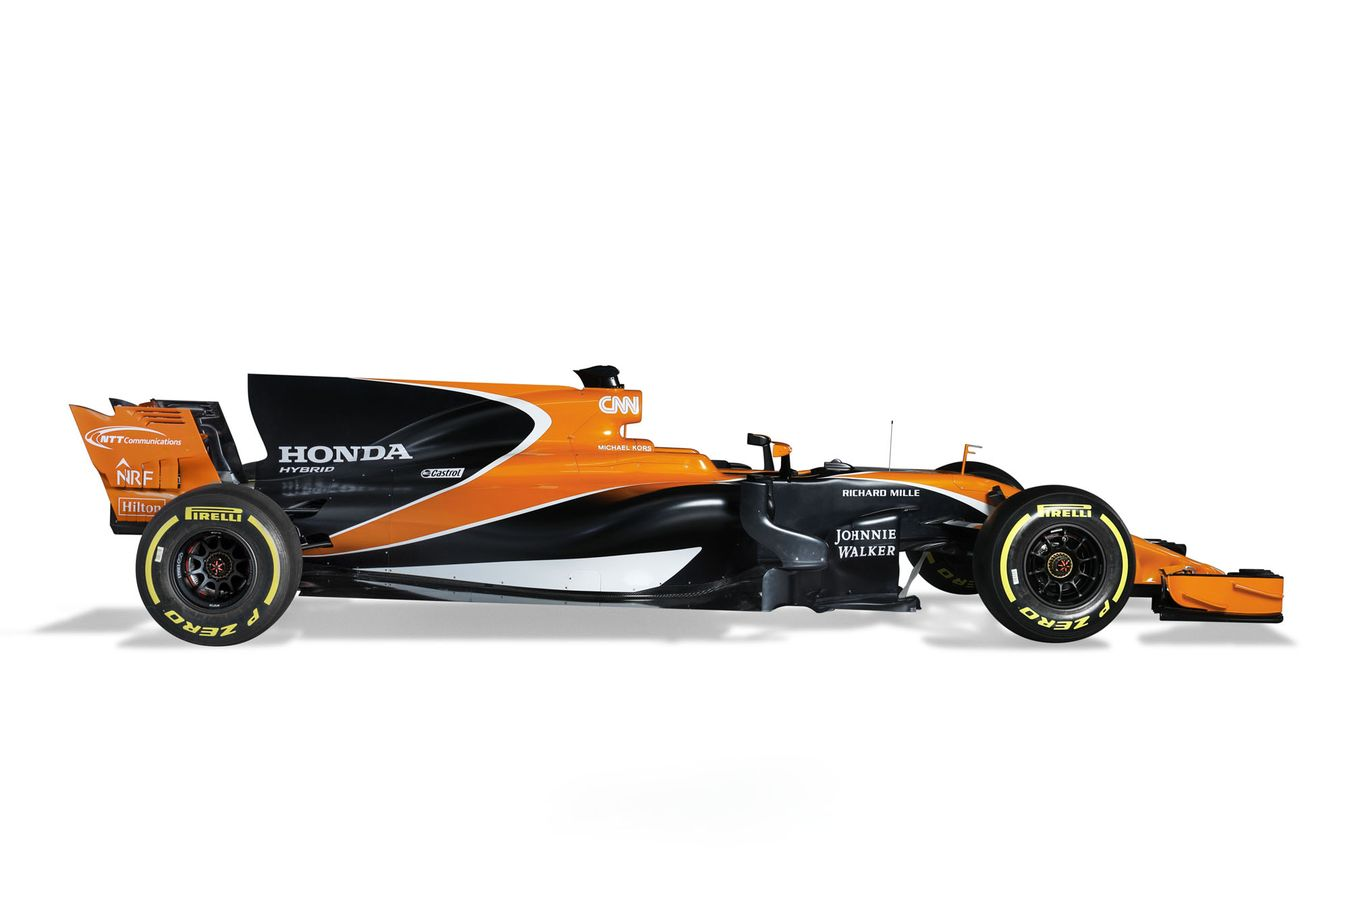 work mclaren honda f1 car livery by the clearing. Black Bedroom Furniture Sets. Home Design Ideas